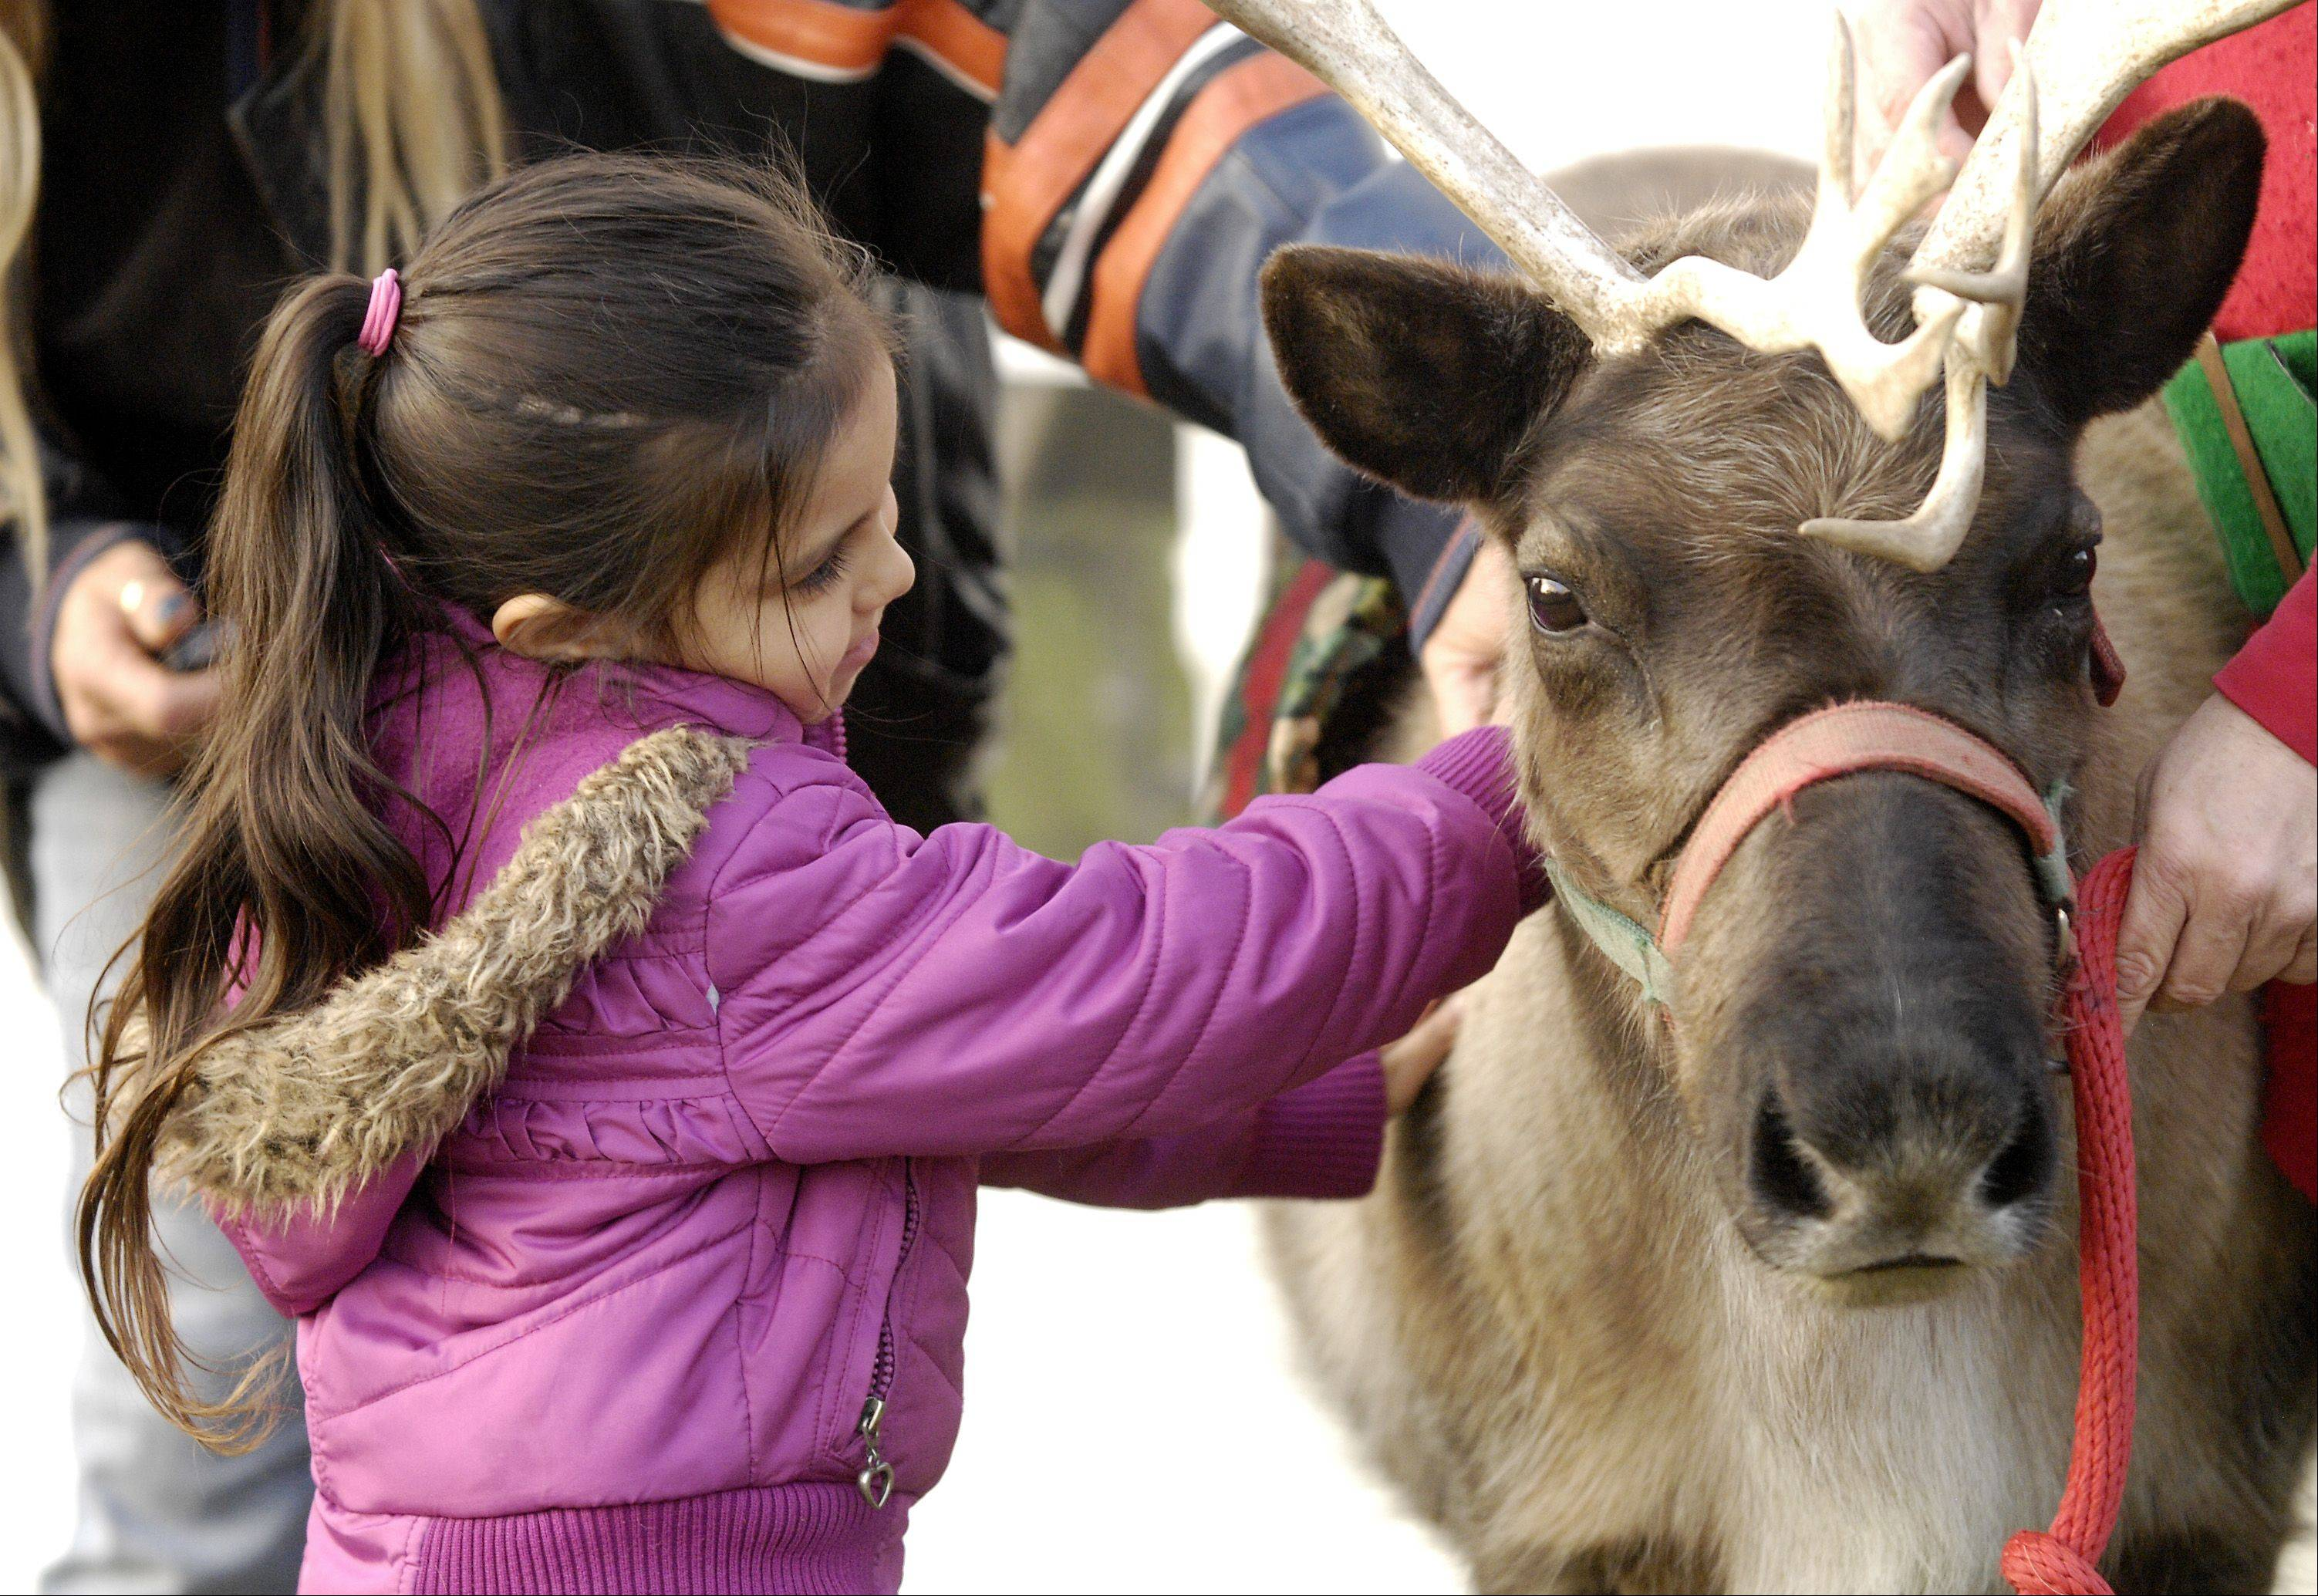 Hailey Ochoa, 5 of Bensenville pets a reindeer during the Bensenville Holiday Magic event Sunday in the Town Center.